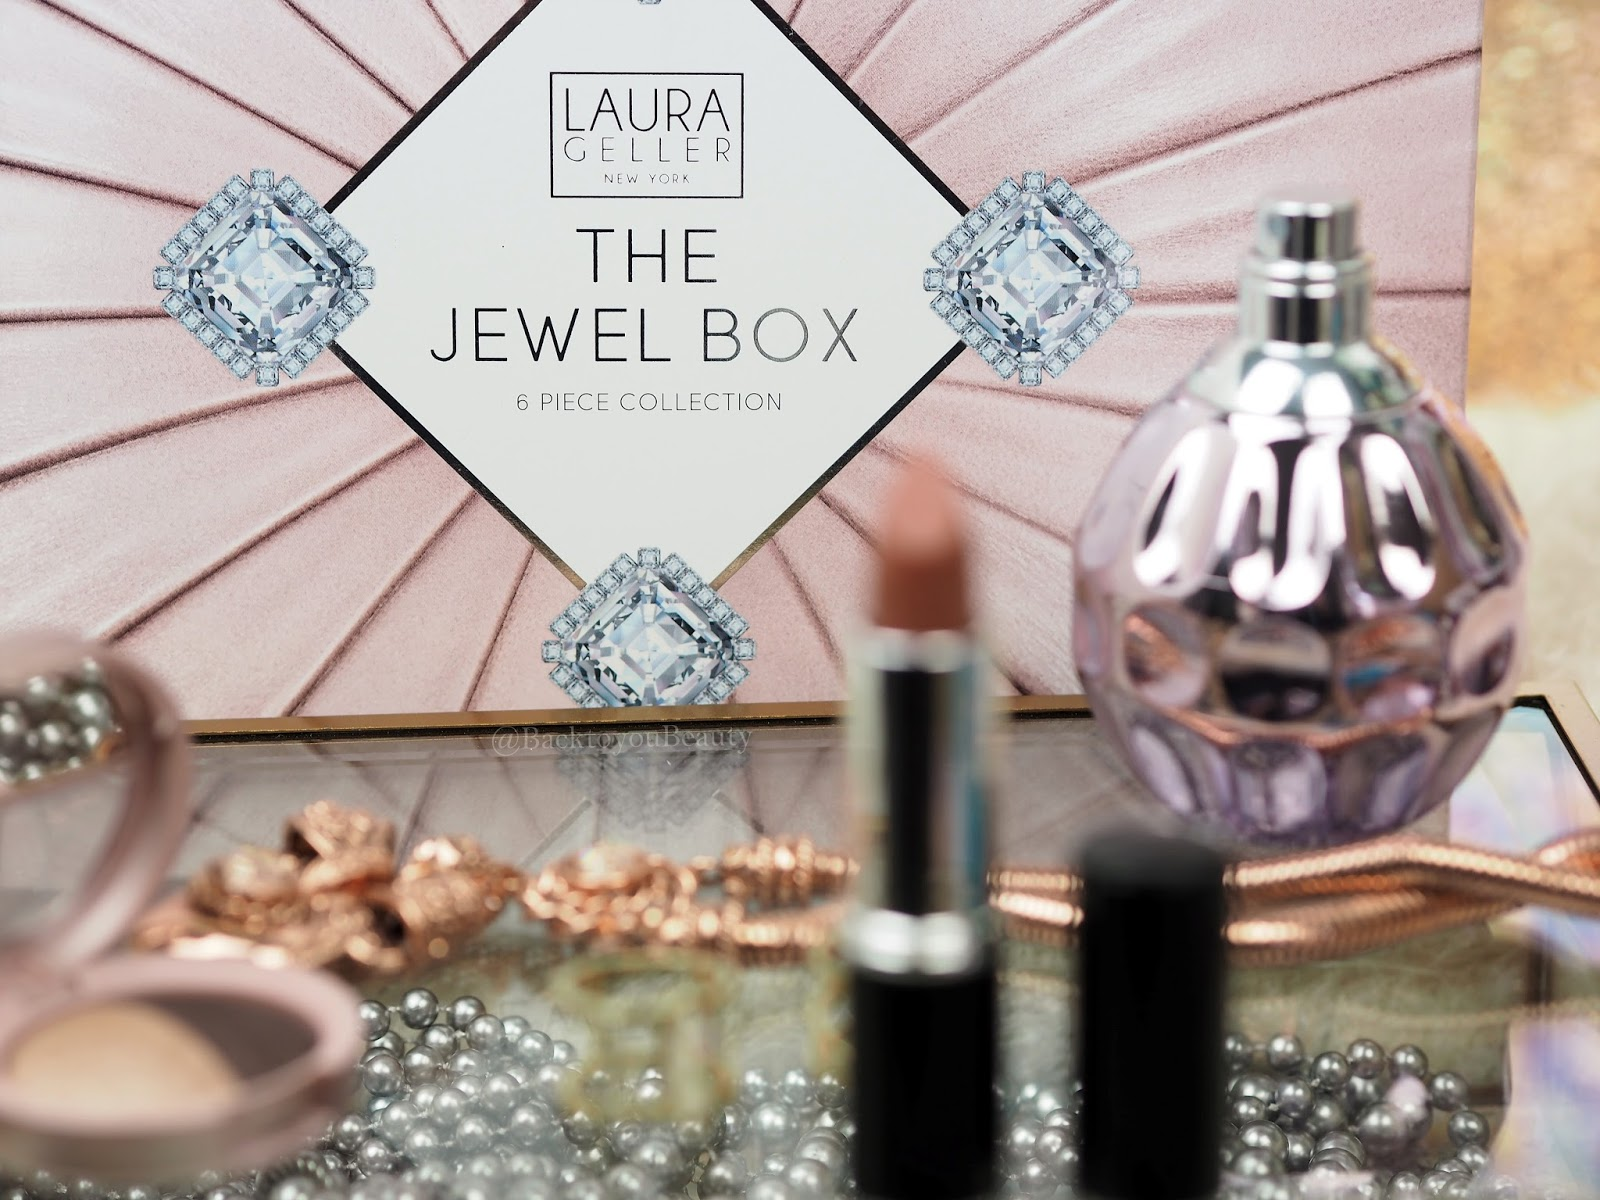 Laura Geller The Jewel Box QvcUK Tsv